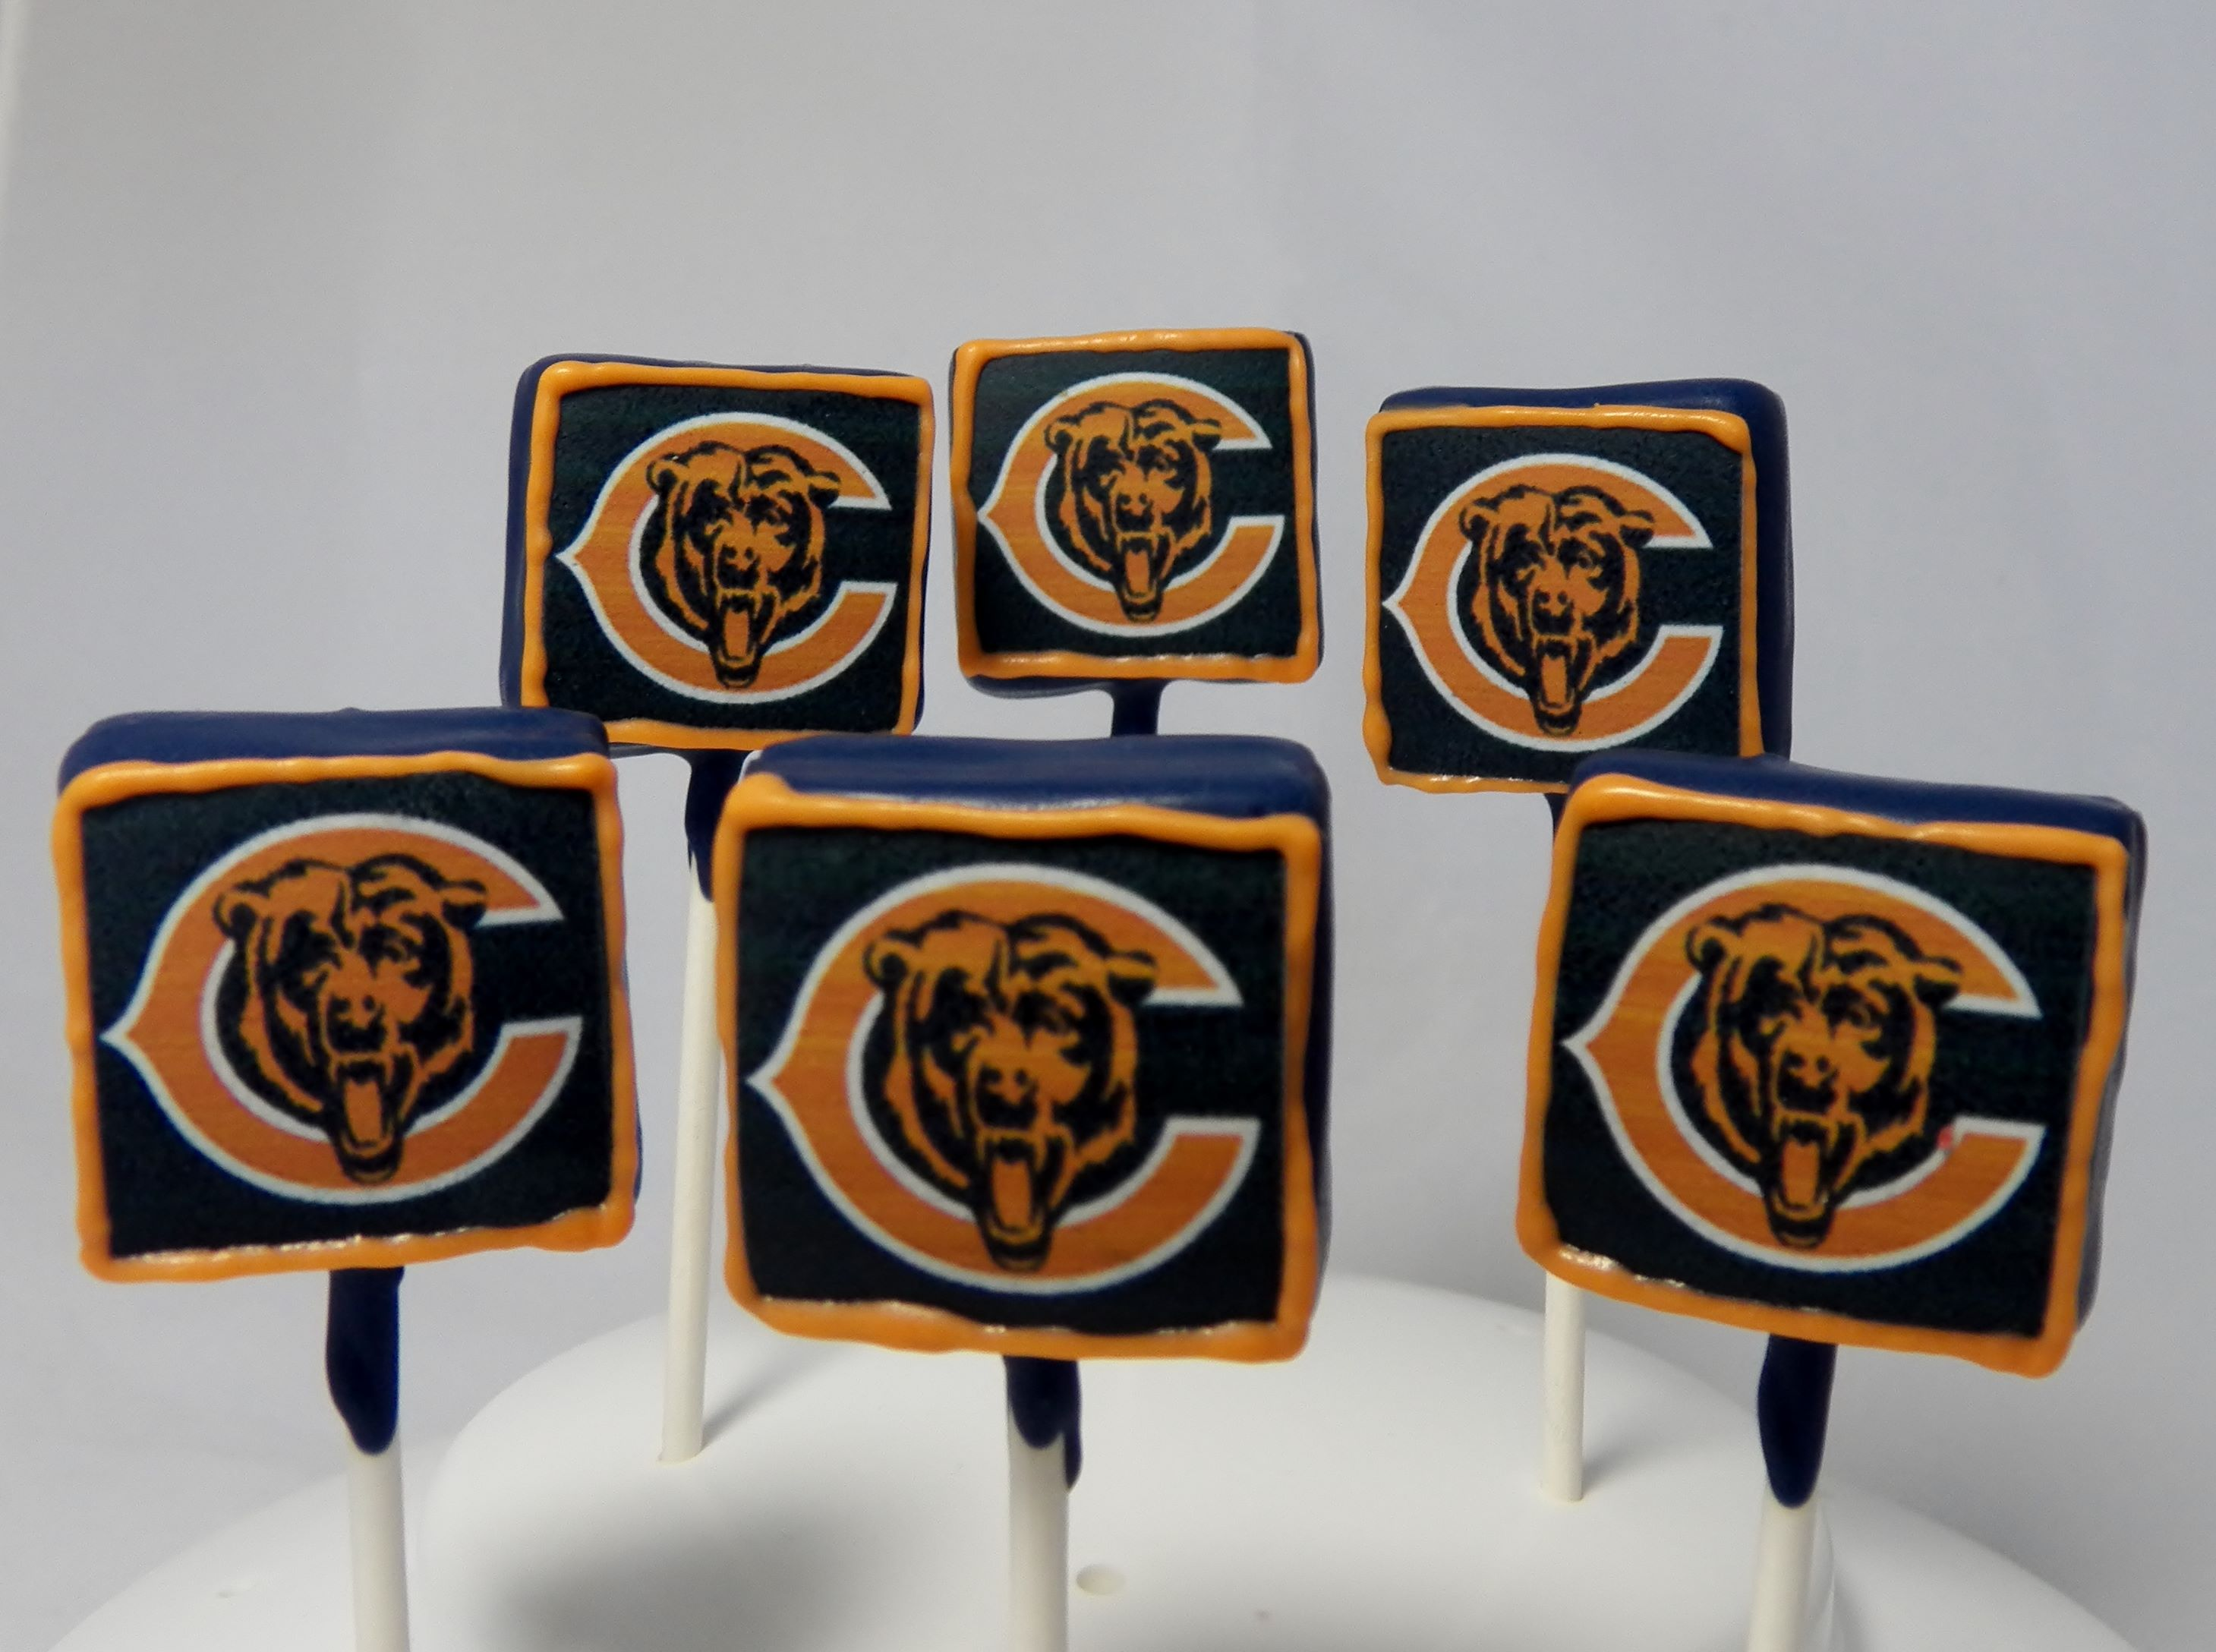 Chicago Bears Cake Pops